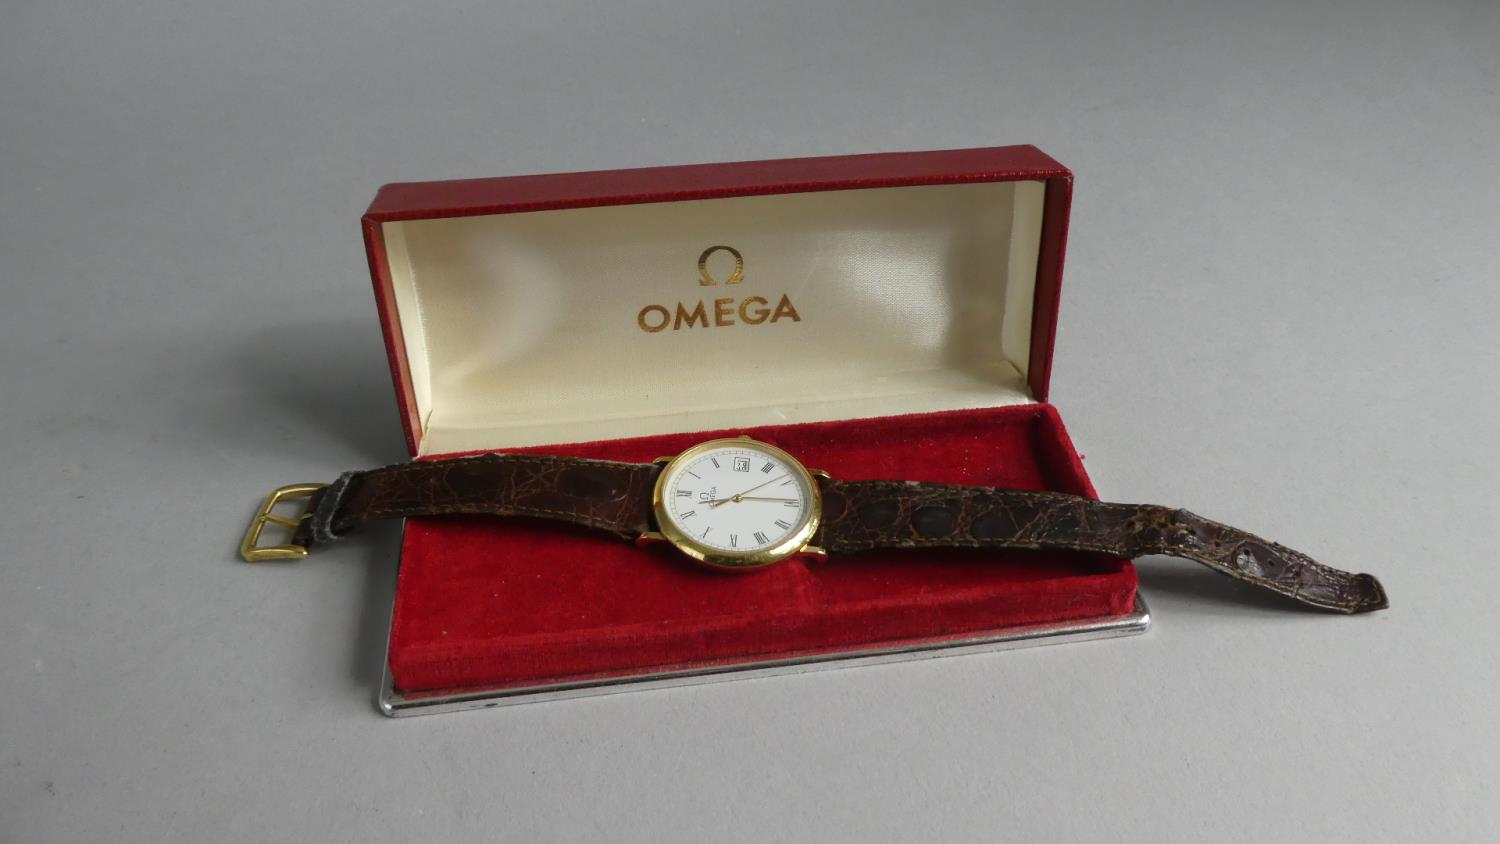 Lot 331 - A 1990s Omega Deville Wrist Watch and Strap, White Face with Roman Numerals and with Date